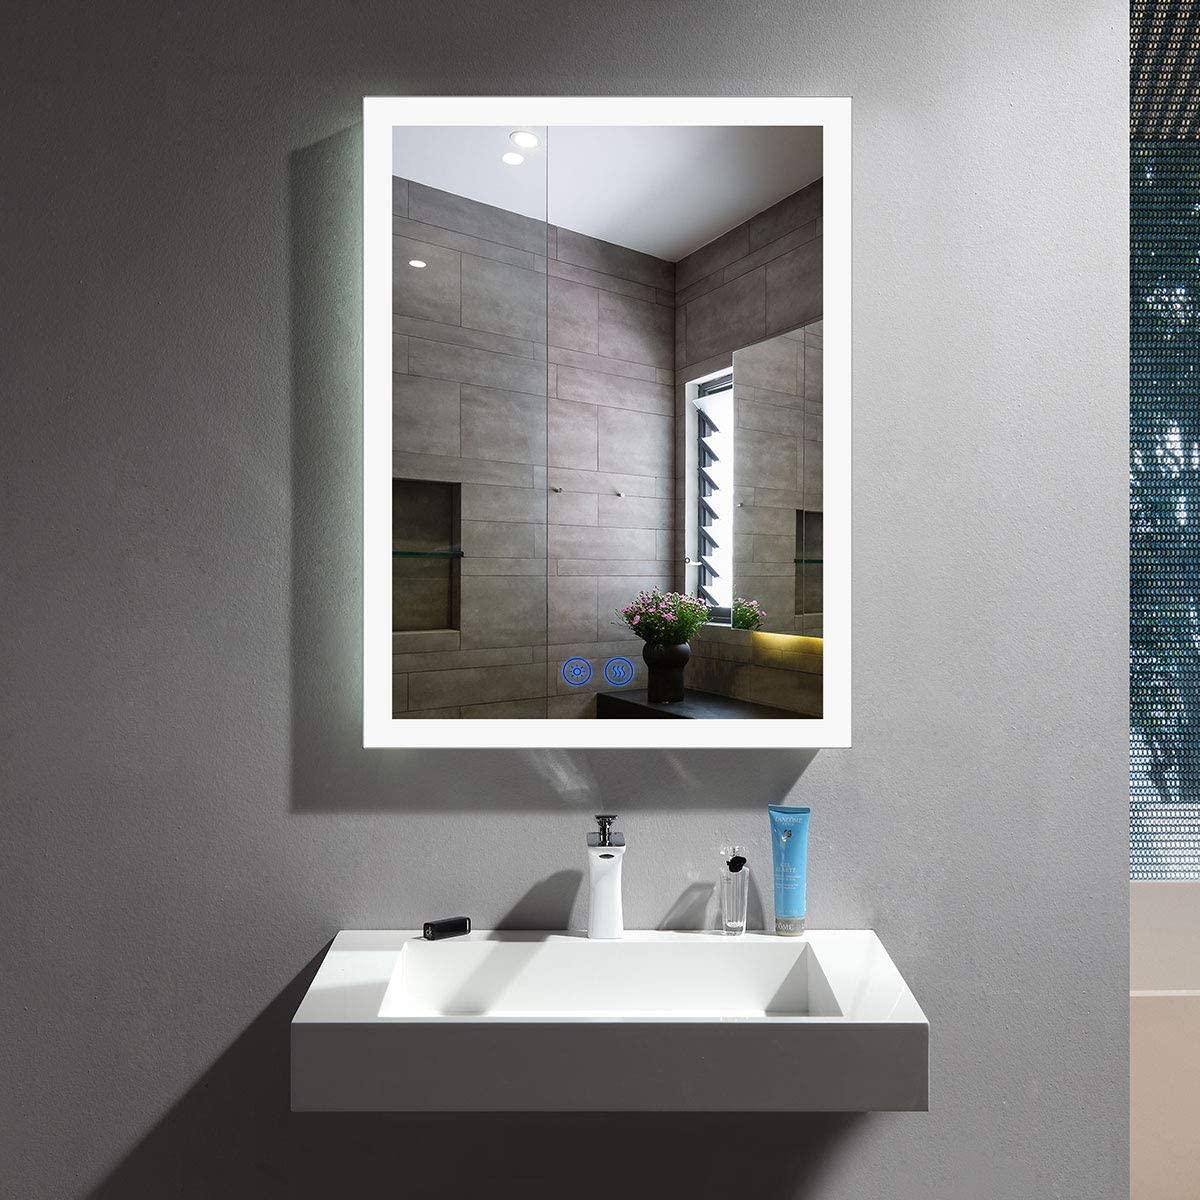 Amazon Com Decoraport Dimmable Led Wall Mounted Mirror With Antifog Lighted Vanity Bathroom Mirror With Touch Button 20x28 Inch Vertical Horizontal Mount Makeup Mirror With Lights Nt16 2028 Home Kitchen